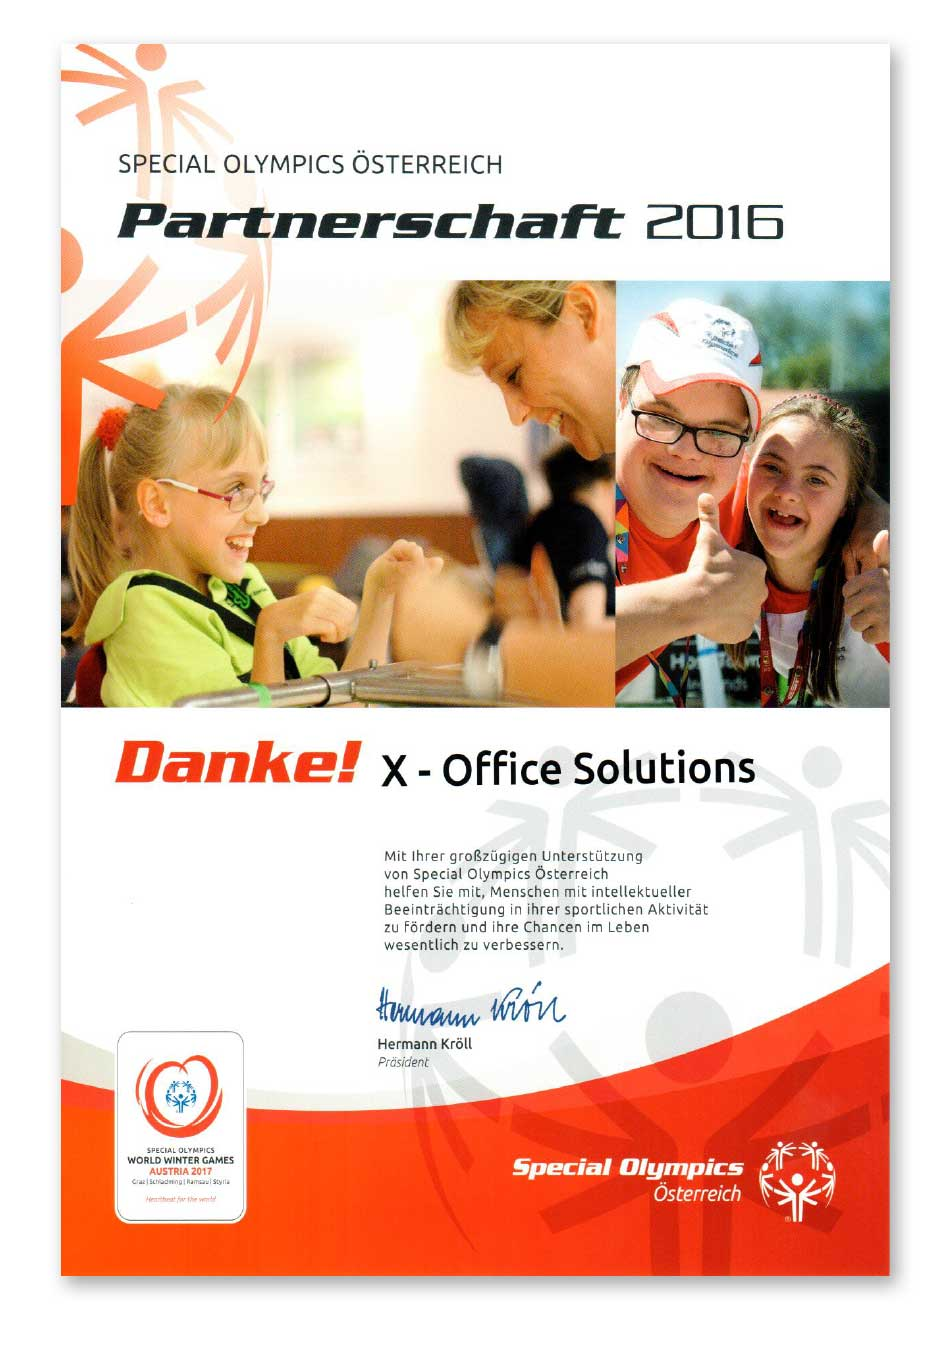 X - Office Solution Parternschaft mit Special Olympics